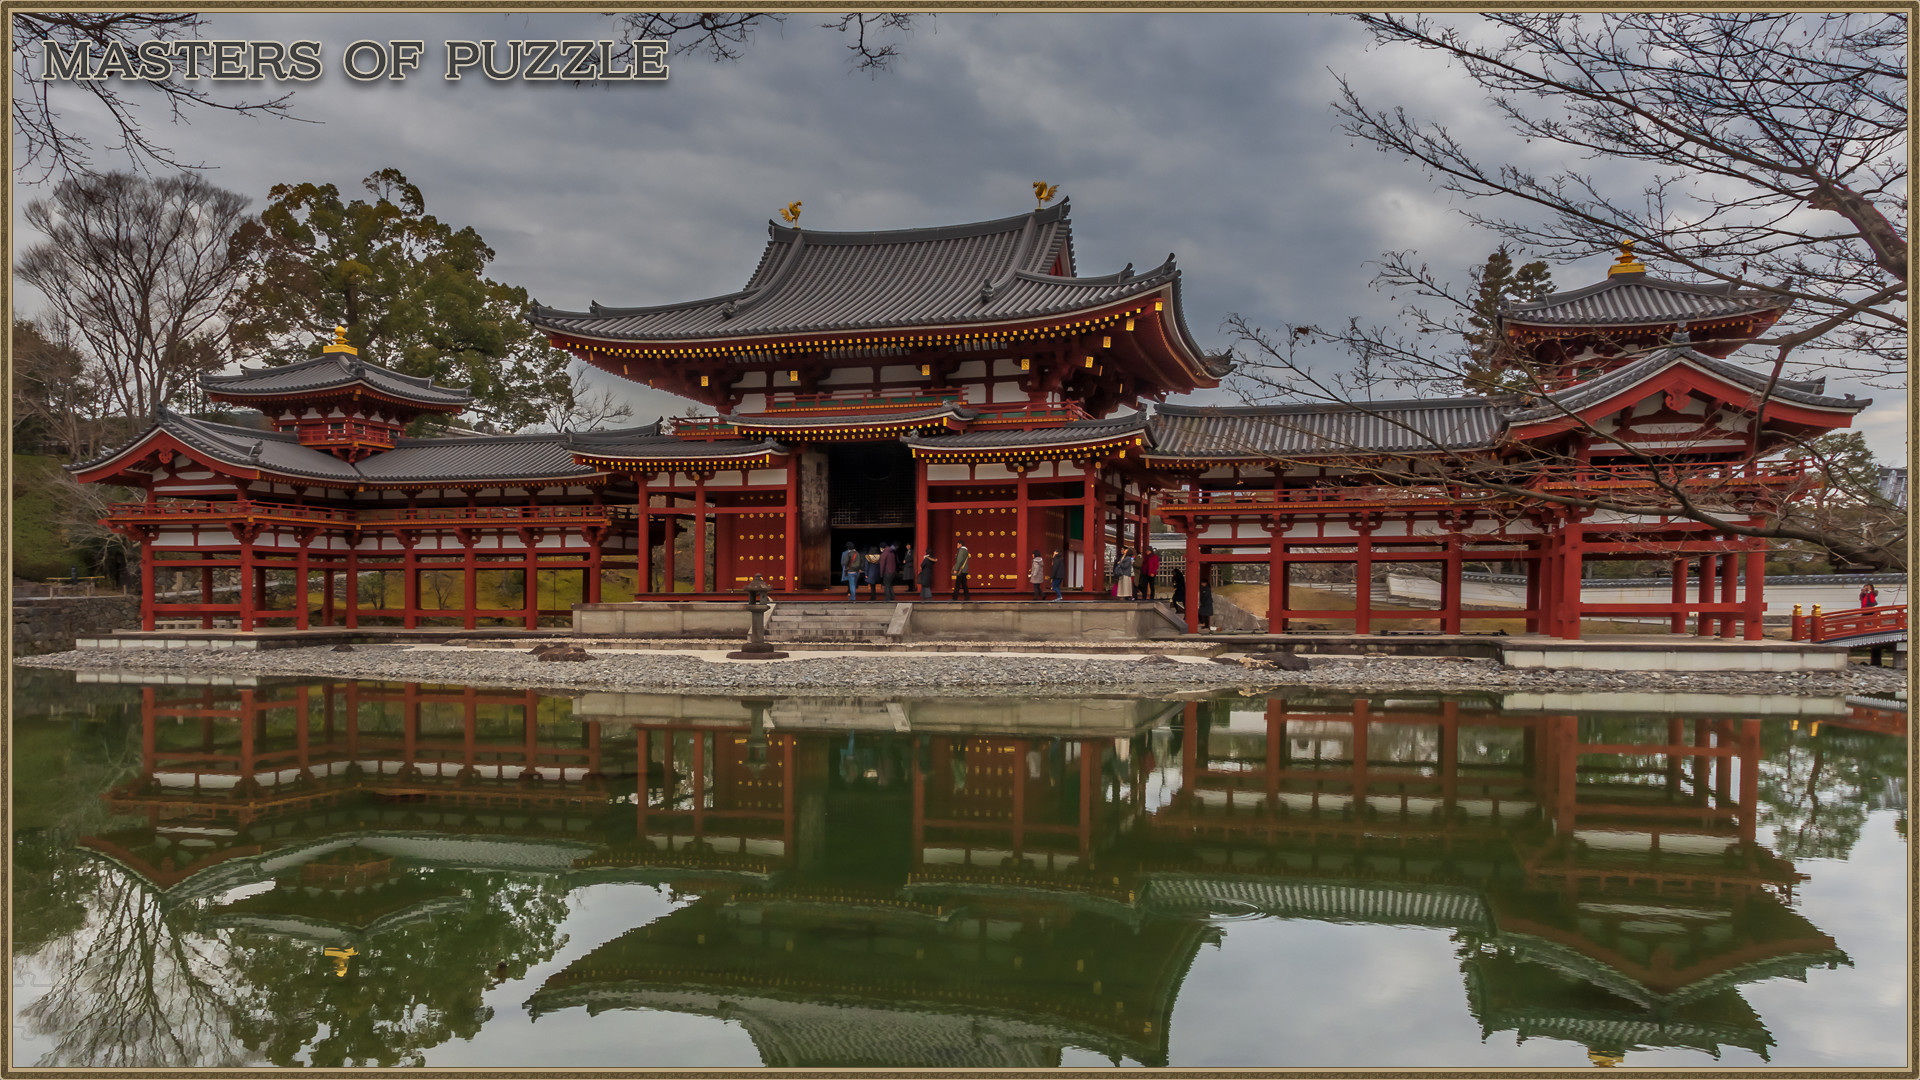 Masters of Puzzle - Byodoin Reflection screenshot